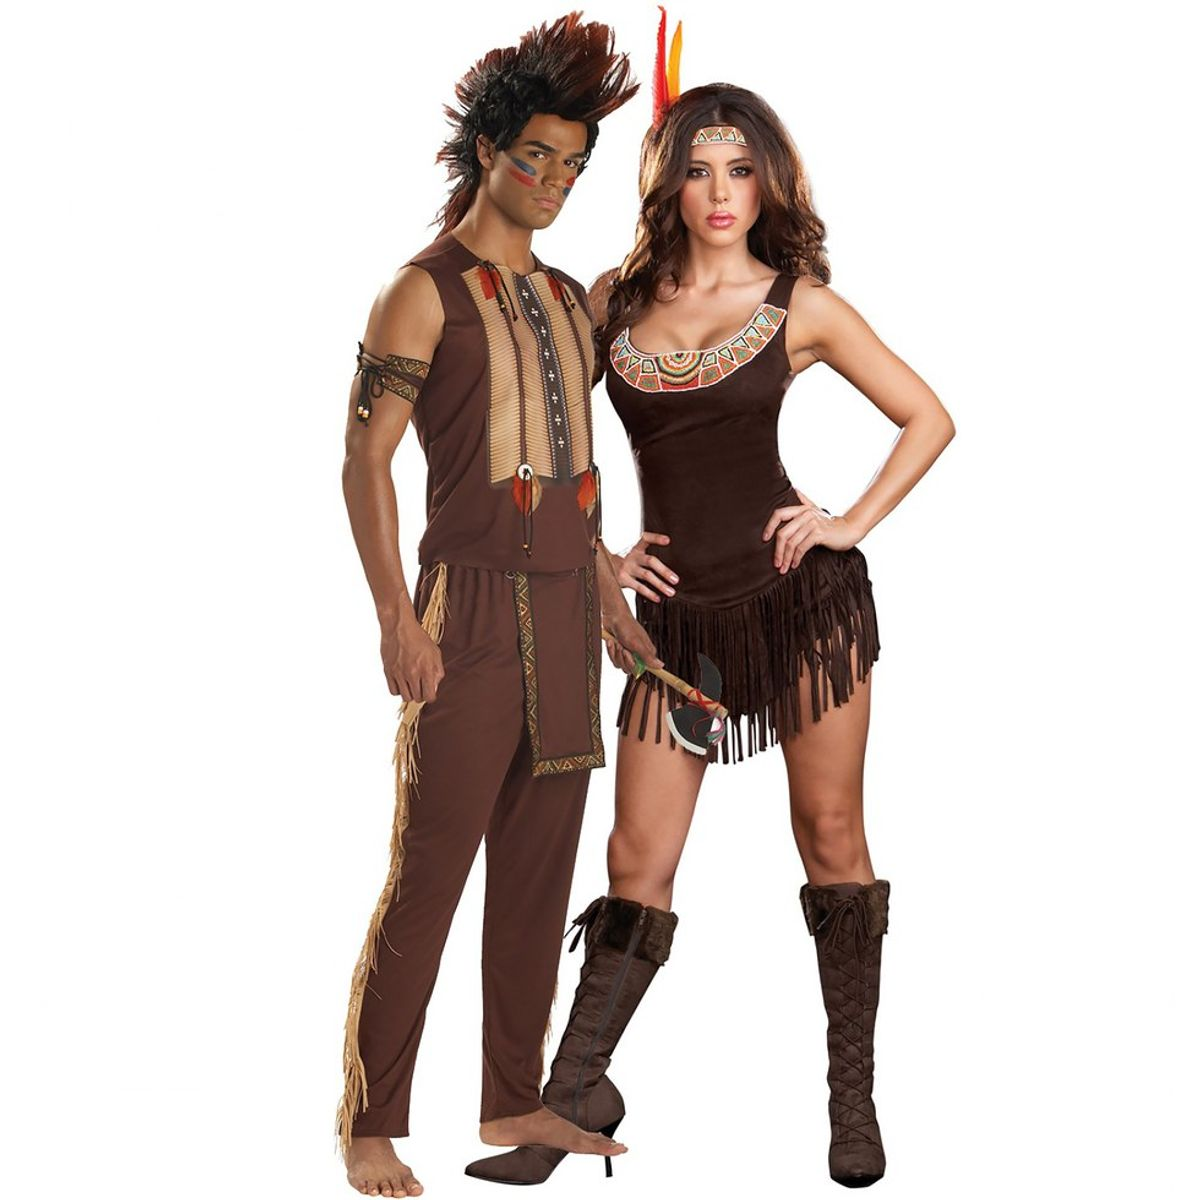 When Is A Halloween Costume Considered Too Offensive?